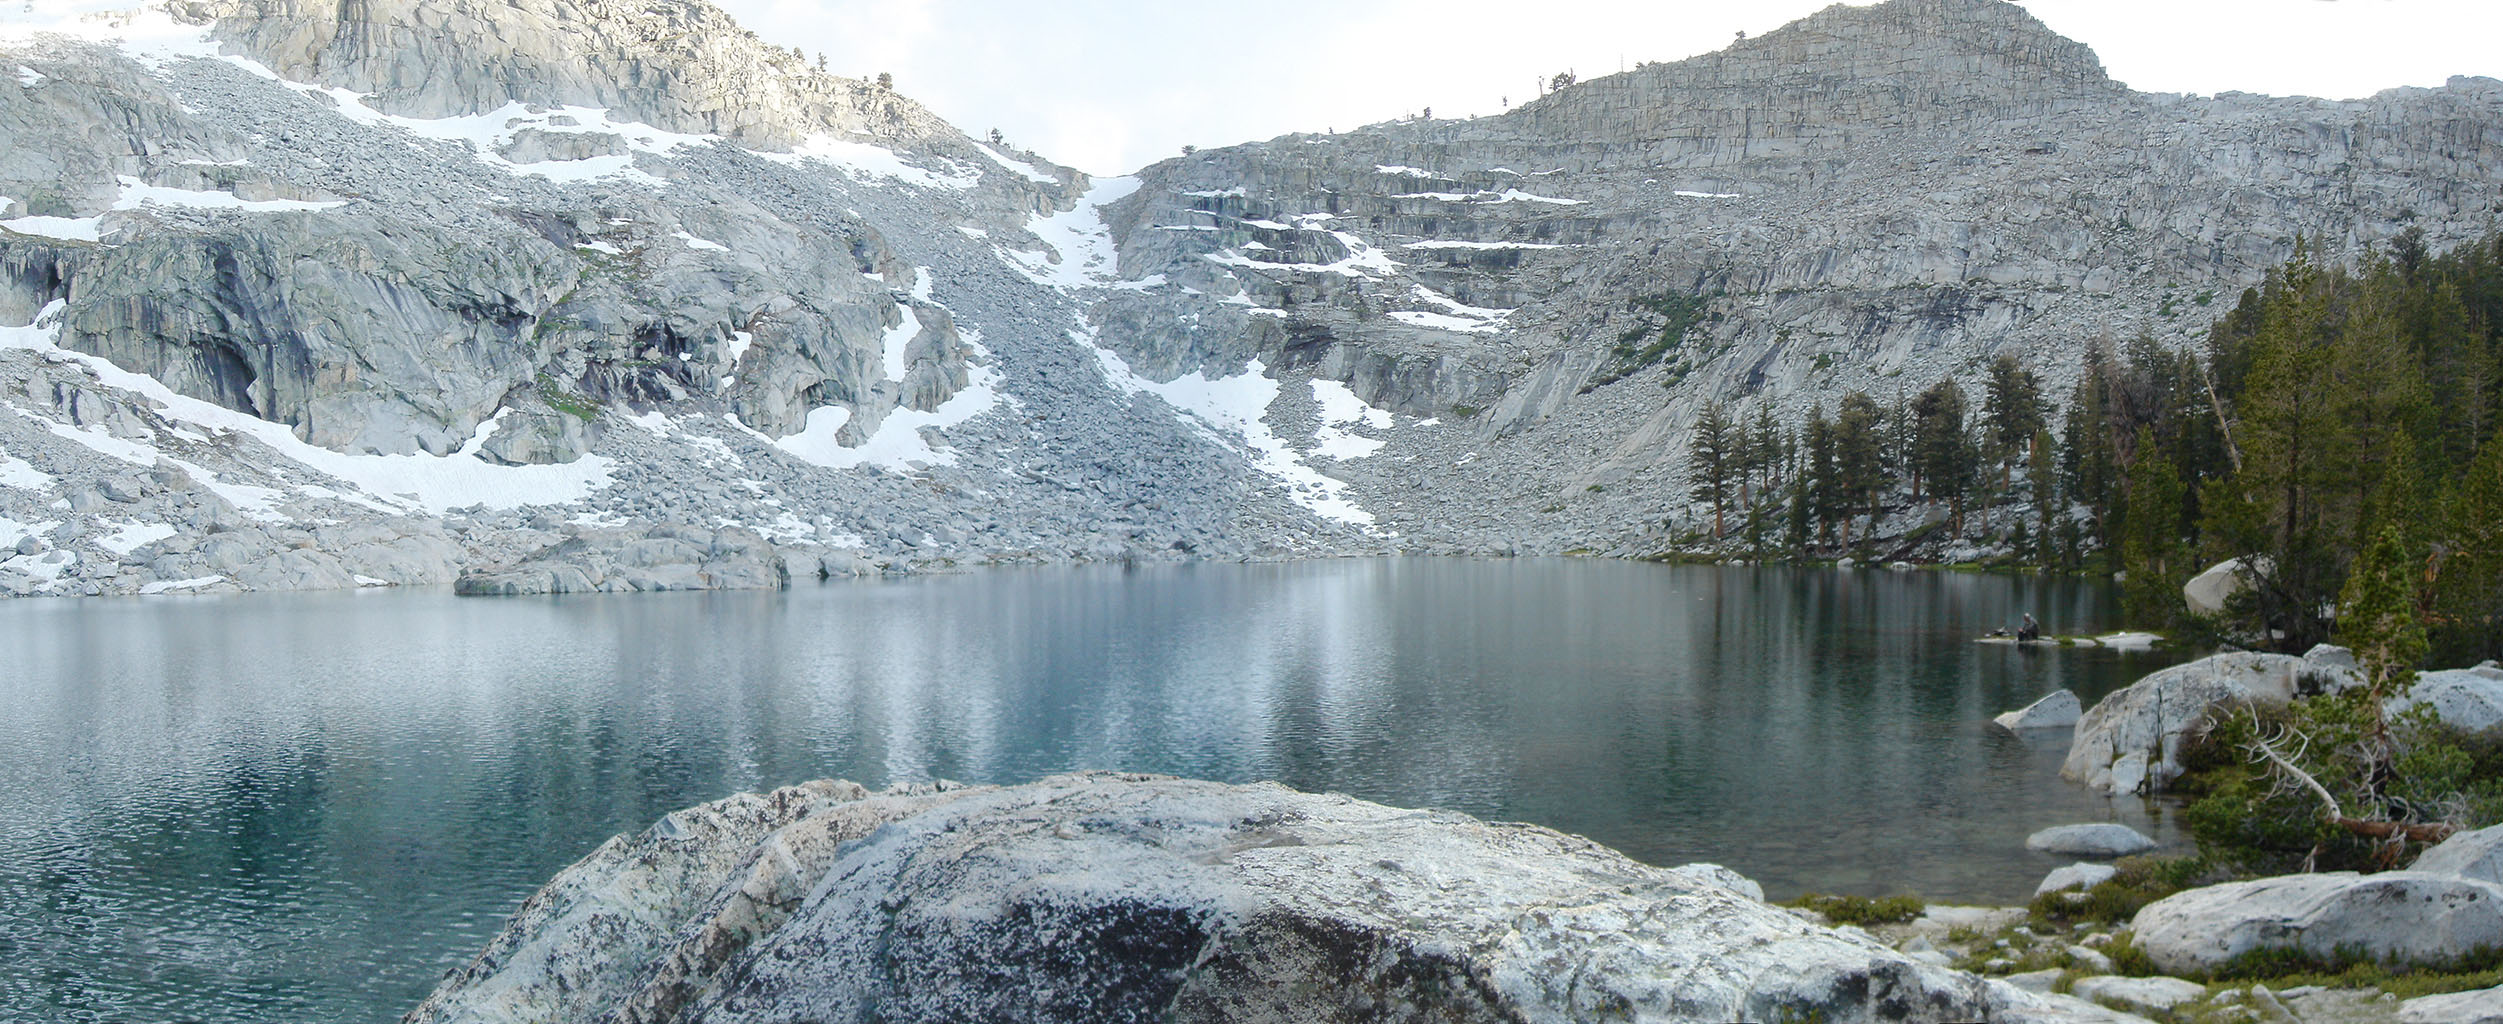 Another panorama of Eagle Lake